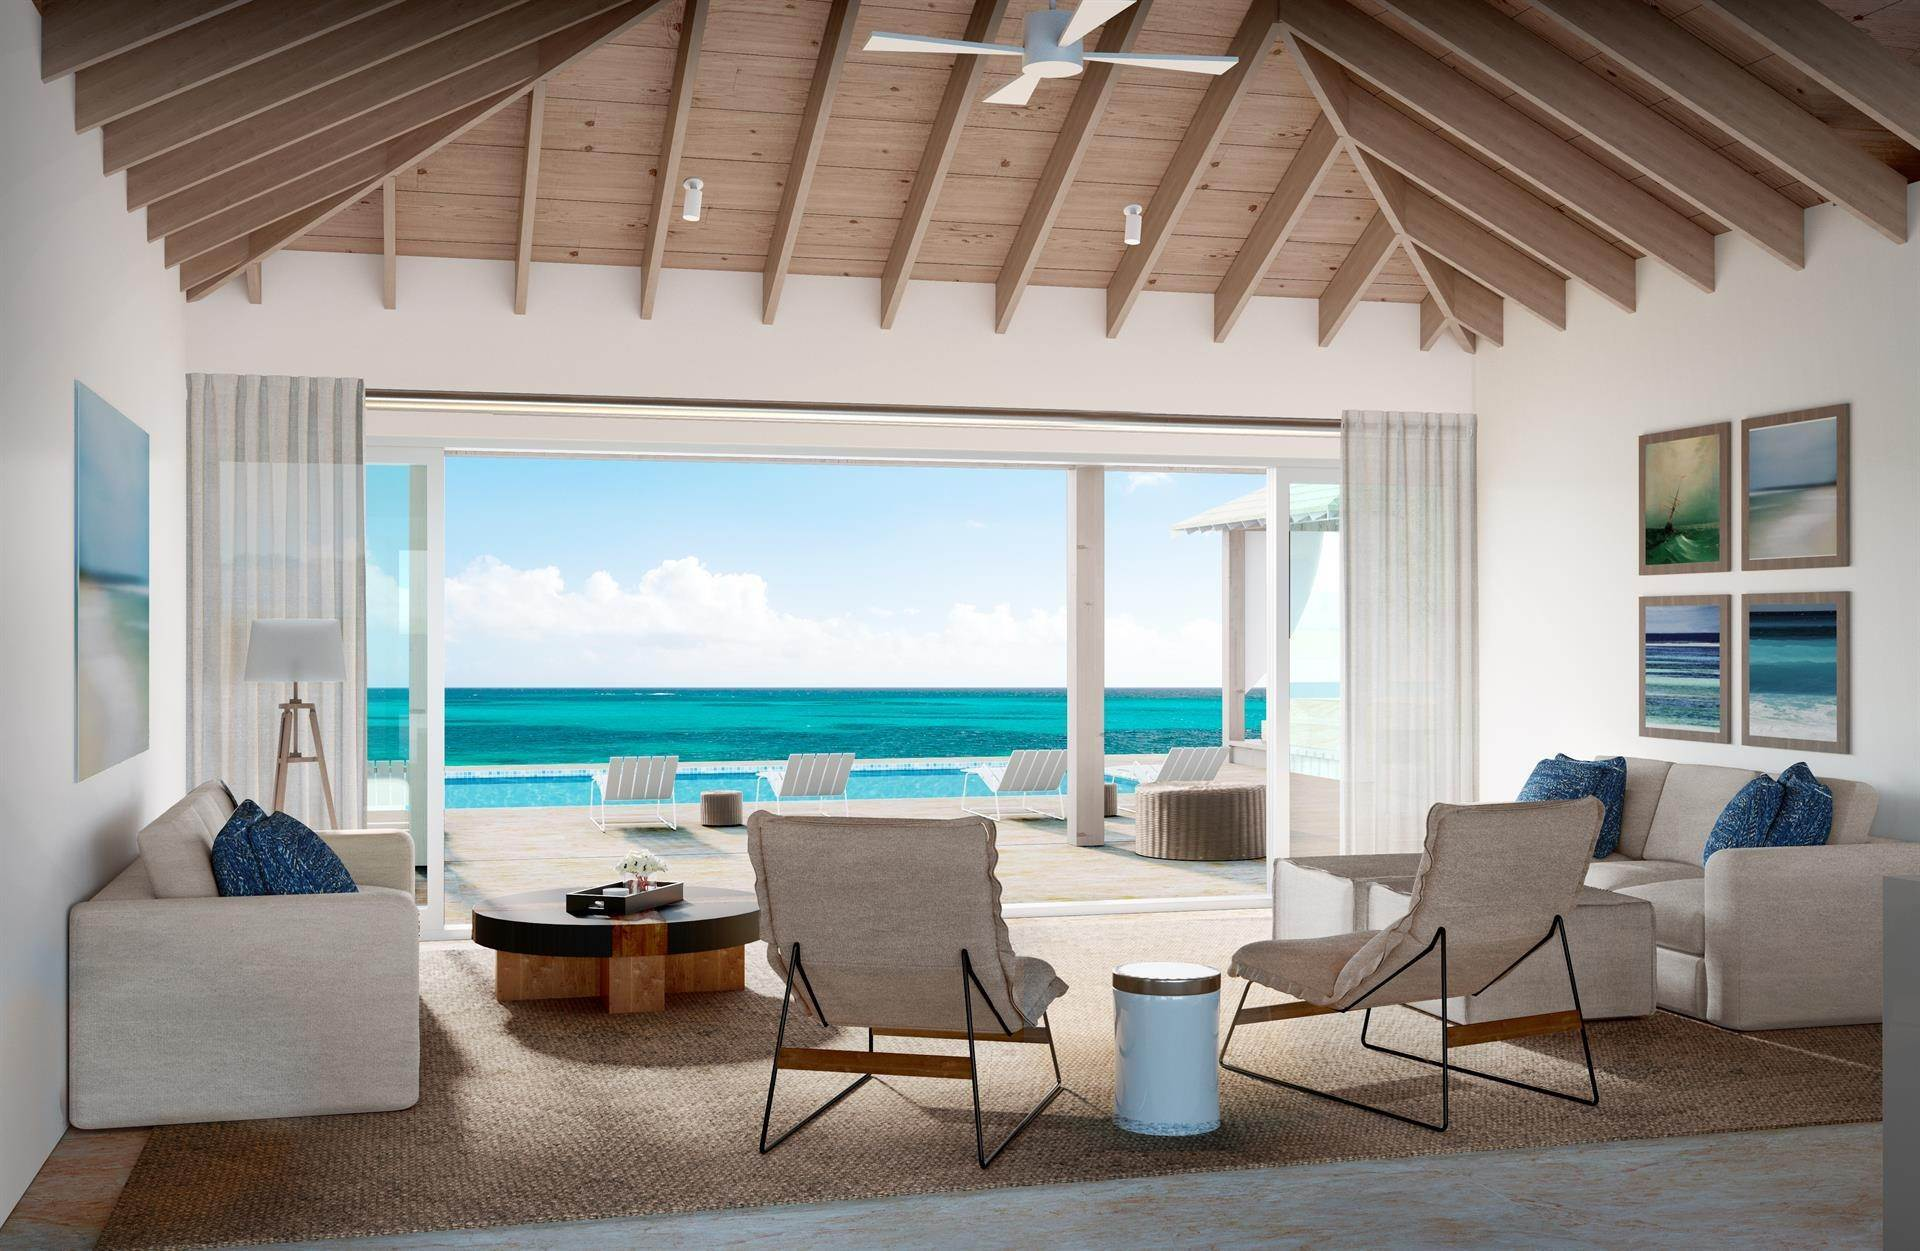 2. Villa/Townhouse for Sale at The Spa Villa at Sailrock The Spa Villa Sailrock, South Caicos,BWI Turks And Caicos Islands